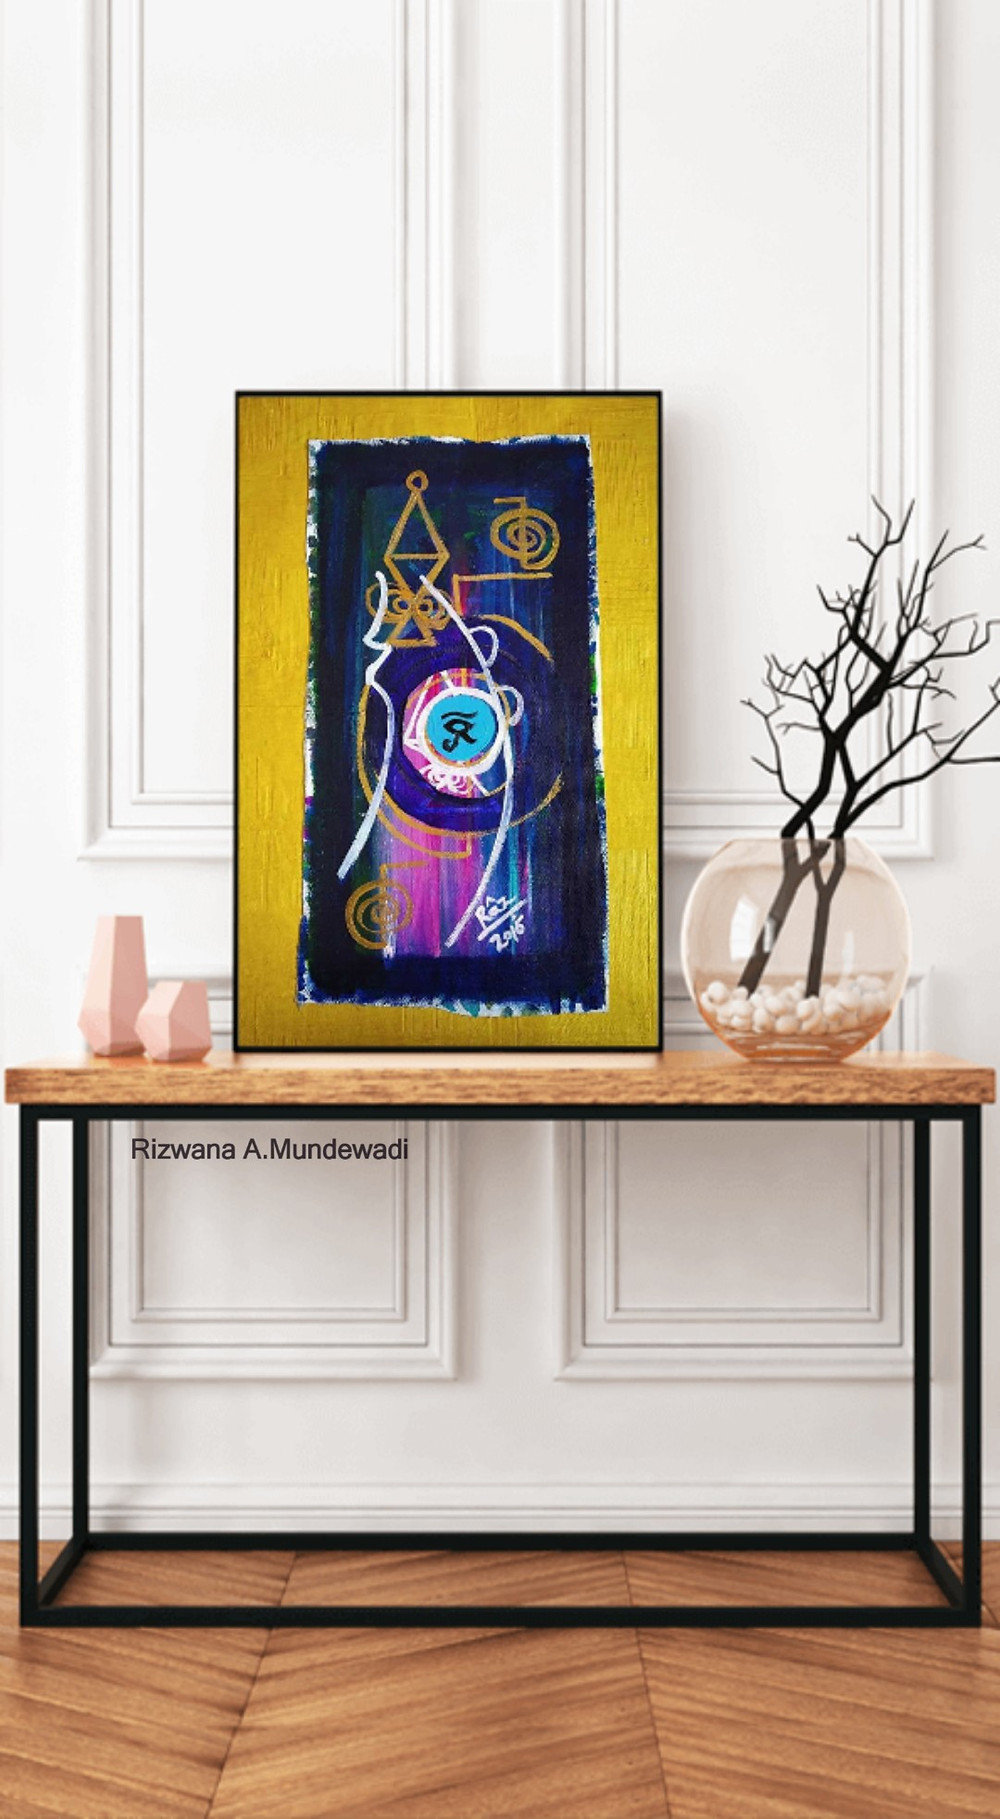 Ra!Reiki protection Eye symbol painting displayed as console Table art